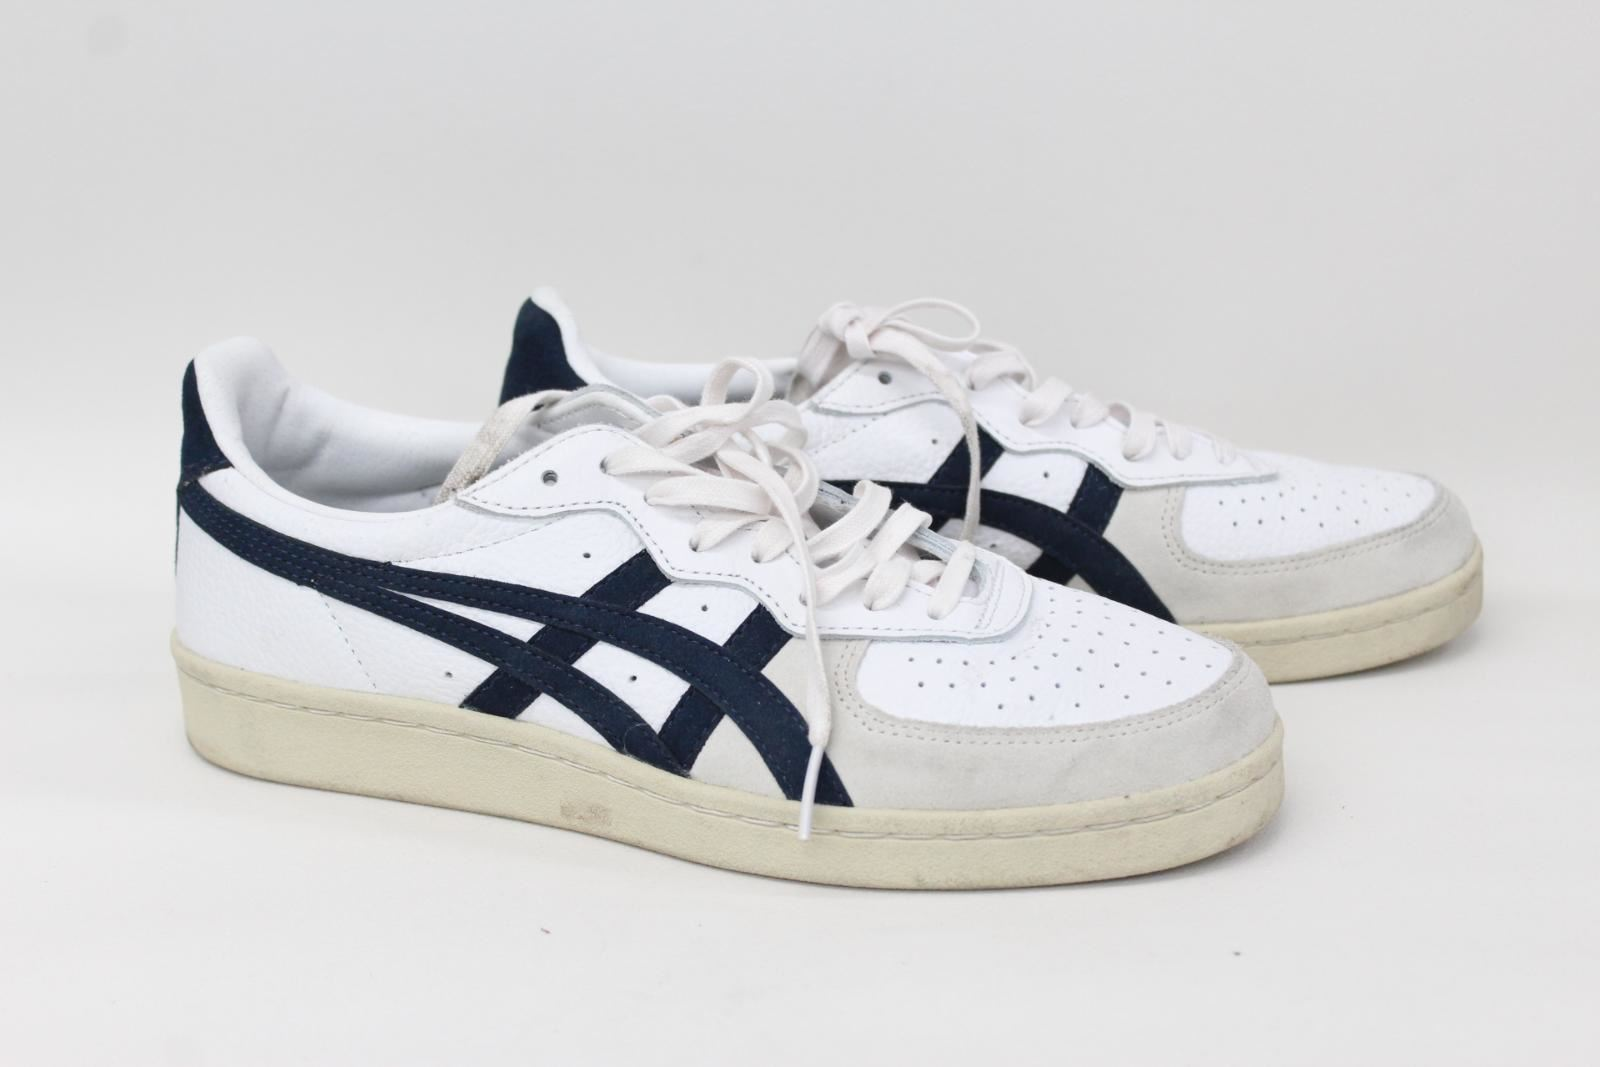 ASICS Onitsuka Tiger Men's White Leather Low Top Lace Up Trainers UK6 EU40